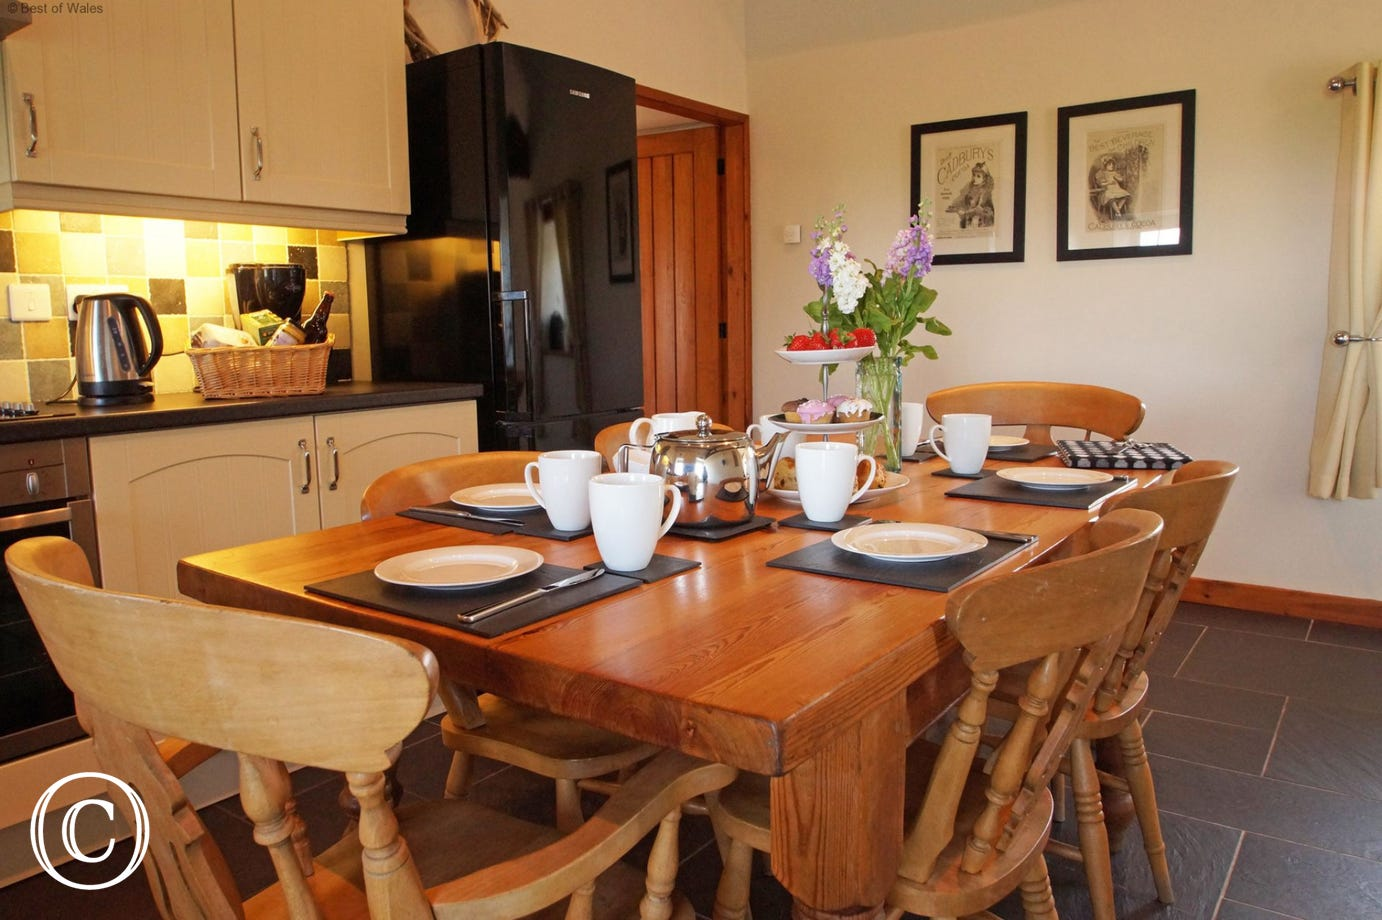 Unit 2: Beudy A spacious, cream 'shaker' style kitchen with a farmhouse pine table.